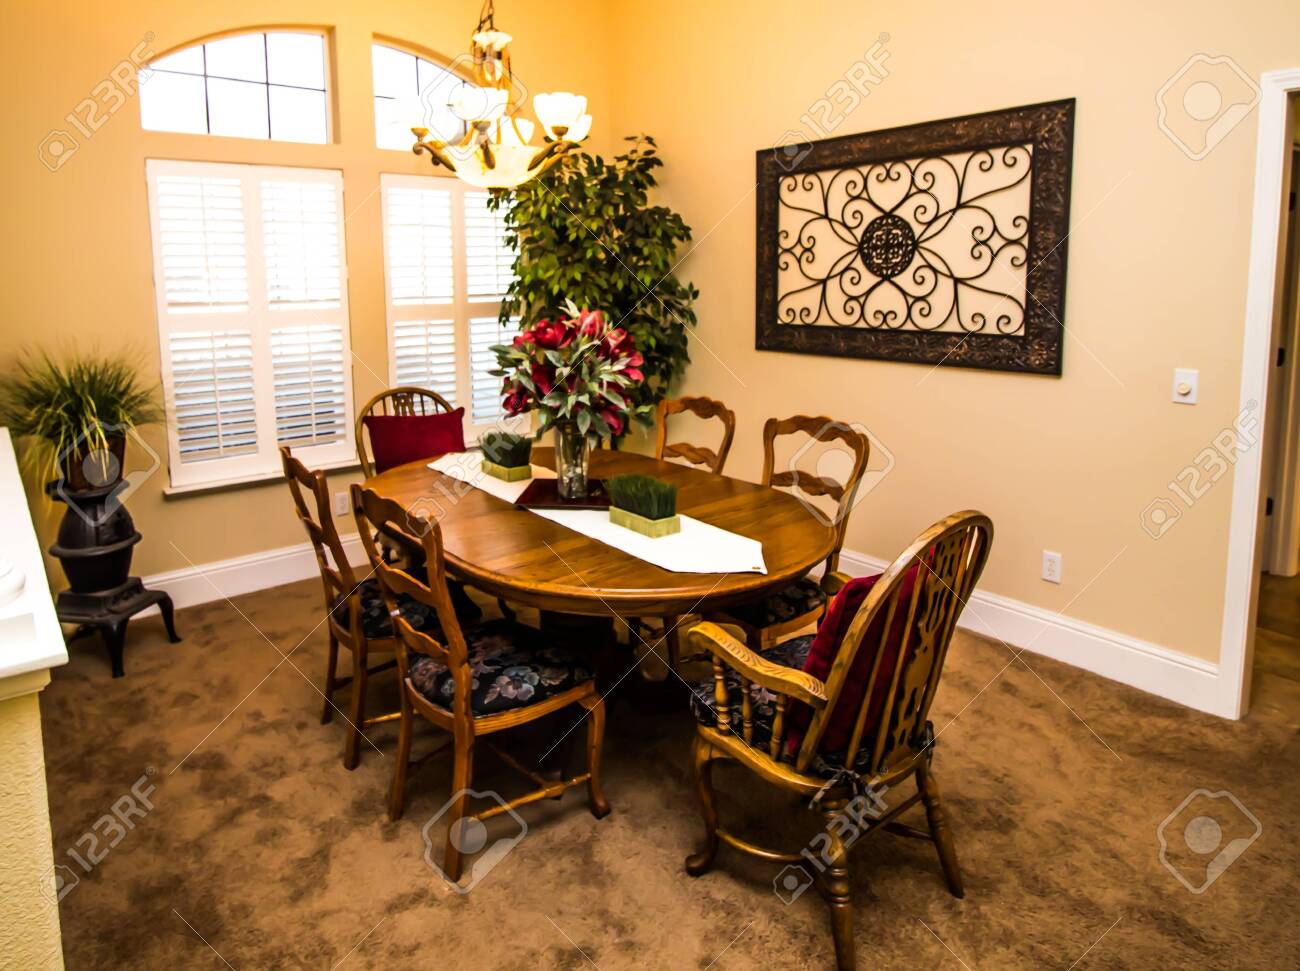 Dining Room With Wooden Table High Back Chairs Stock Photo Picture And Royalty Free Image Image 132386947